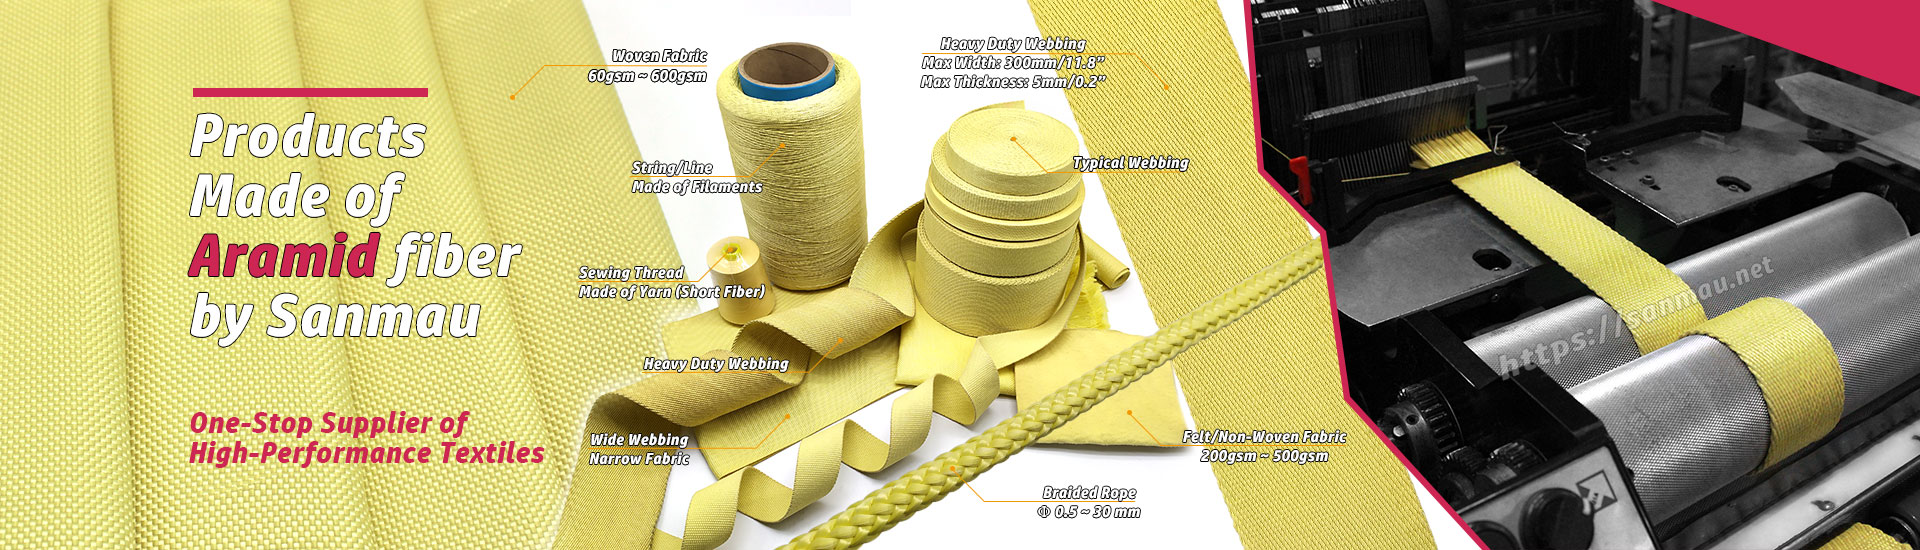 Kevlar aramid fiber textiles together